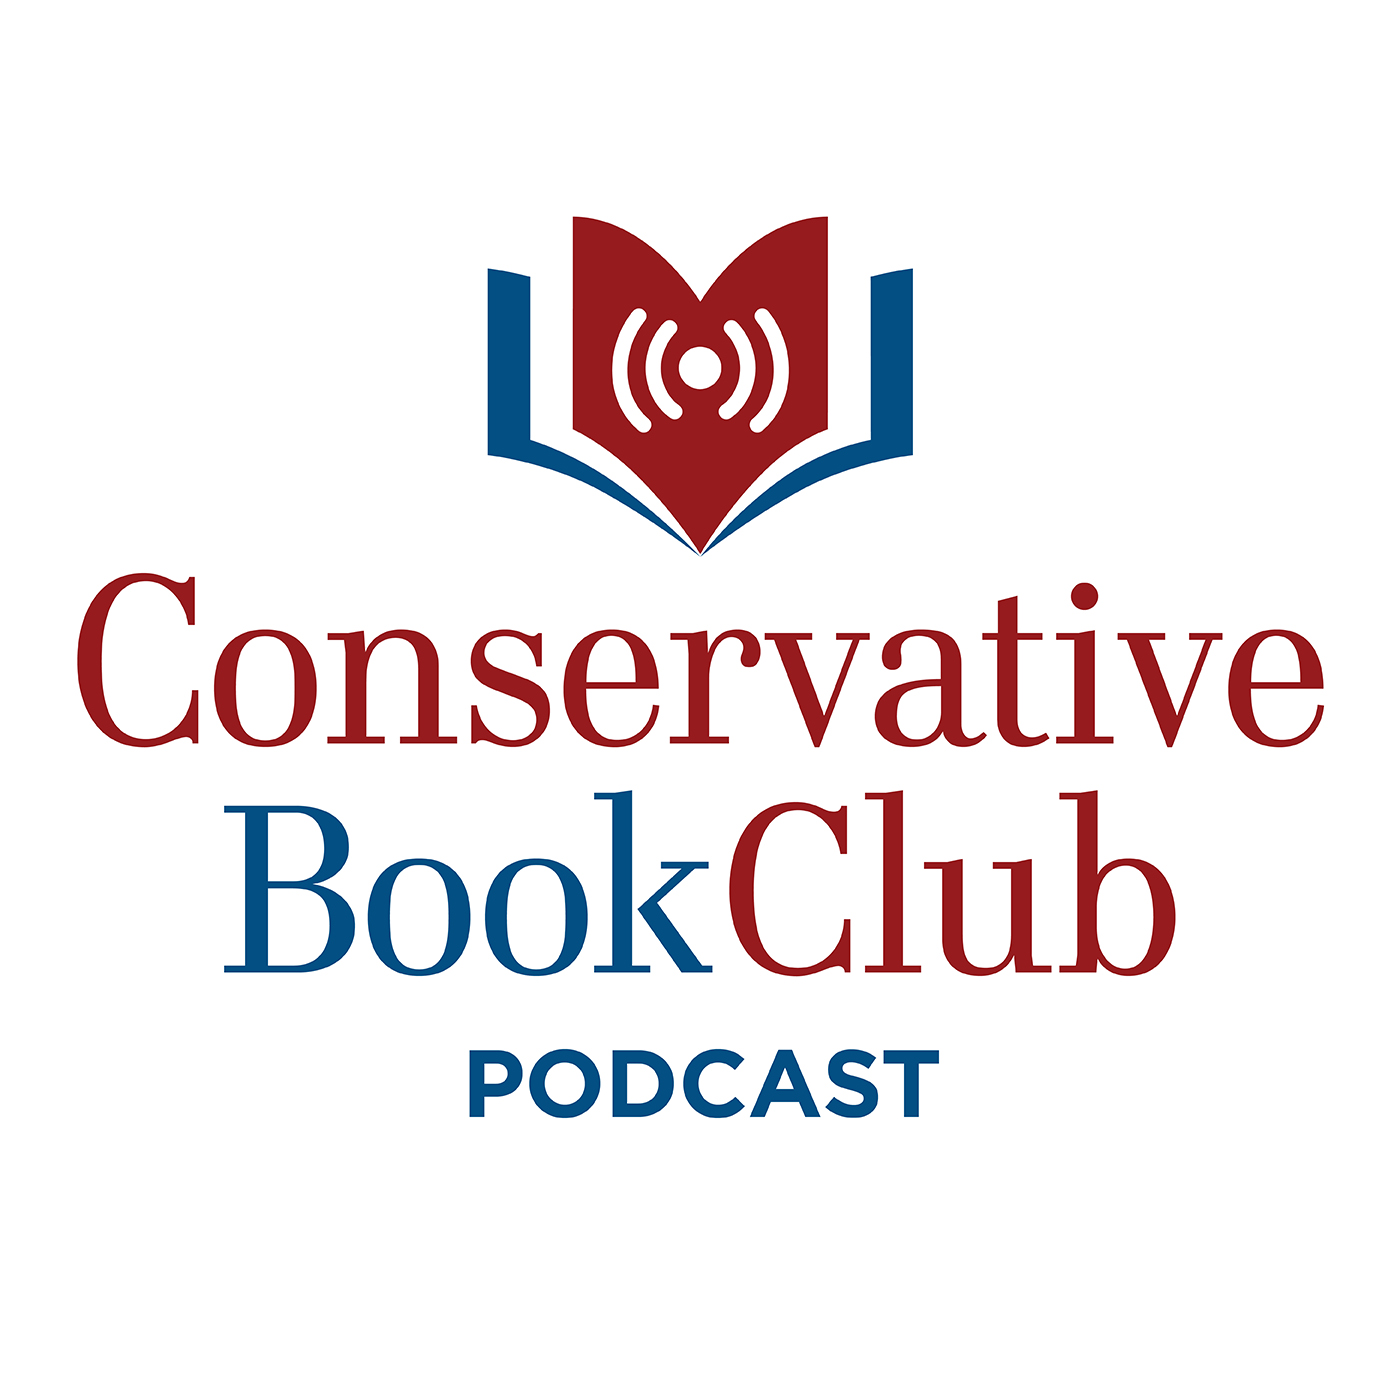 Conservative Book Club Podcast: Your Home for Great Conservative Books and Movies show art